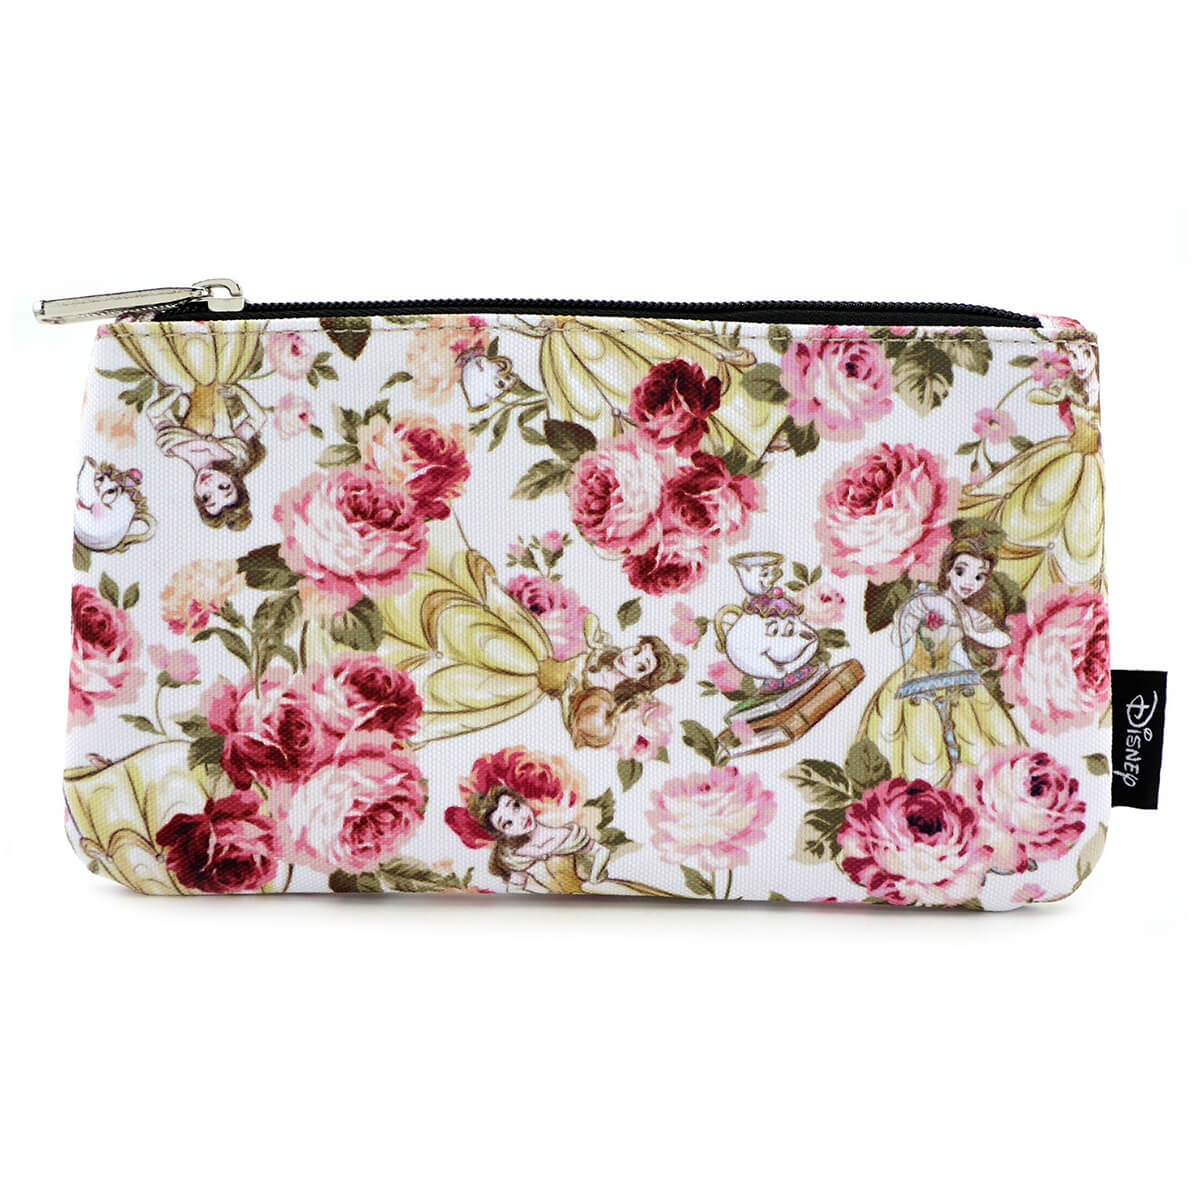 352cd61c68b7 Loungefly Disney Beauty and the Beast Character Floral AOP Pencil Case.  Description